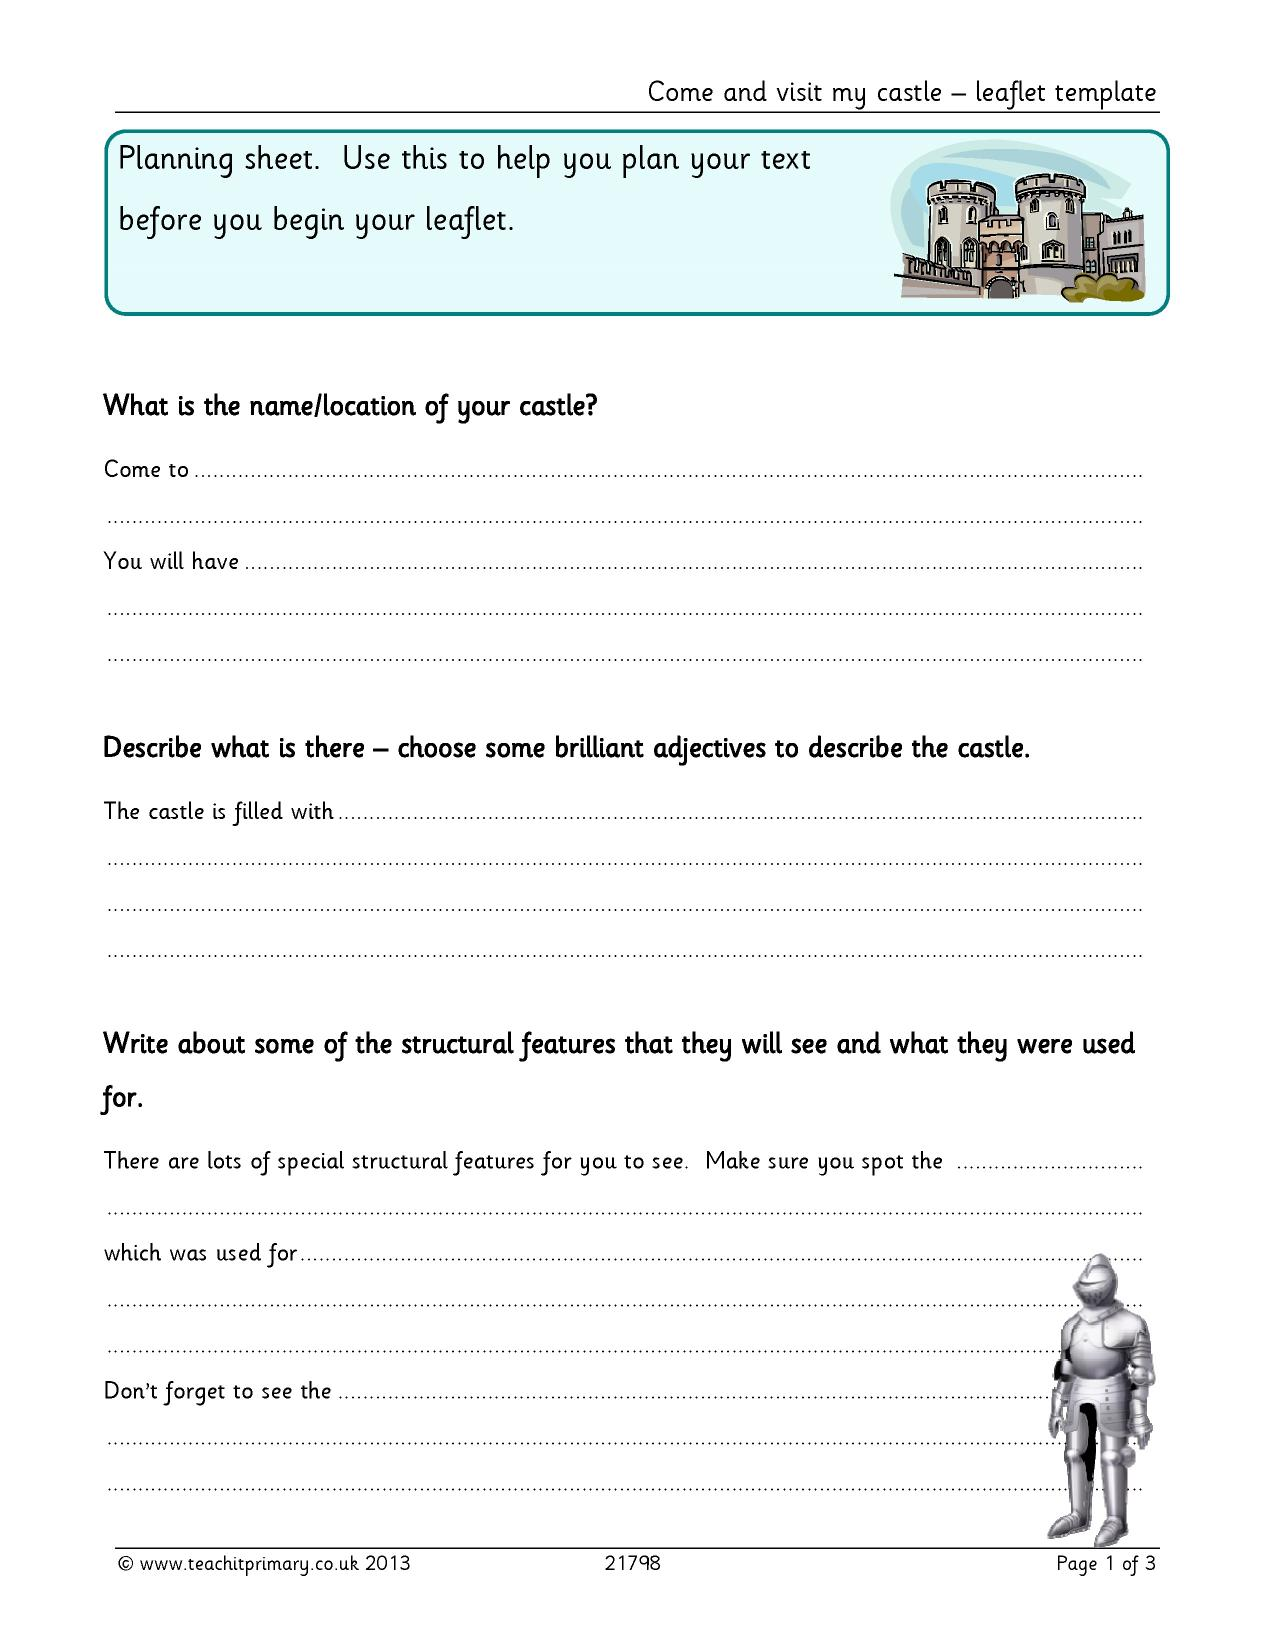 persuasive writing comprehension Here you can find worksheets and activities for teaching persuasive writing to kids, teenagers or adults, beginner intermediate or advanced levels.